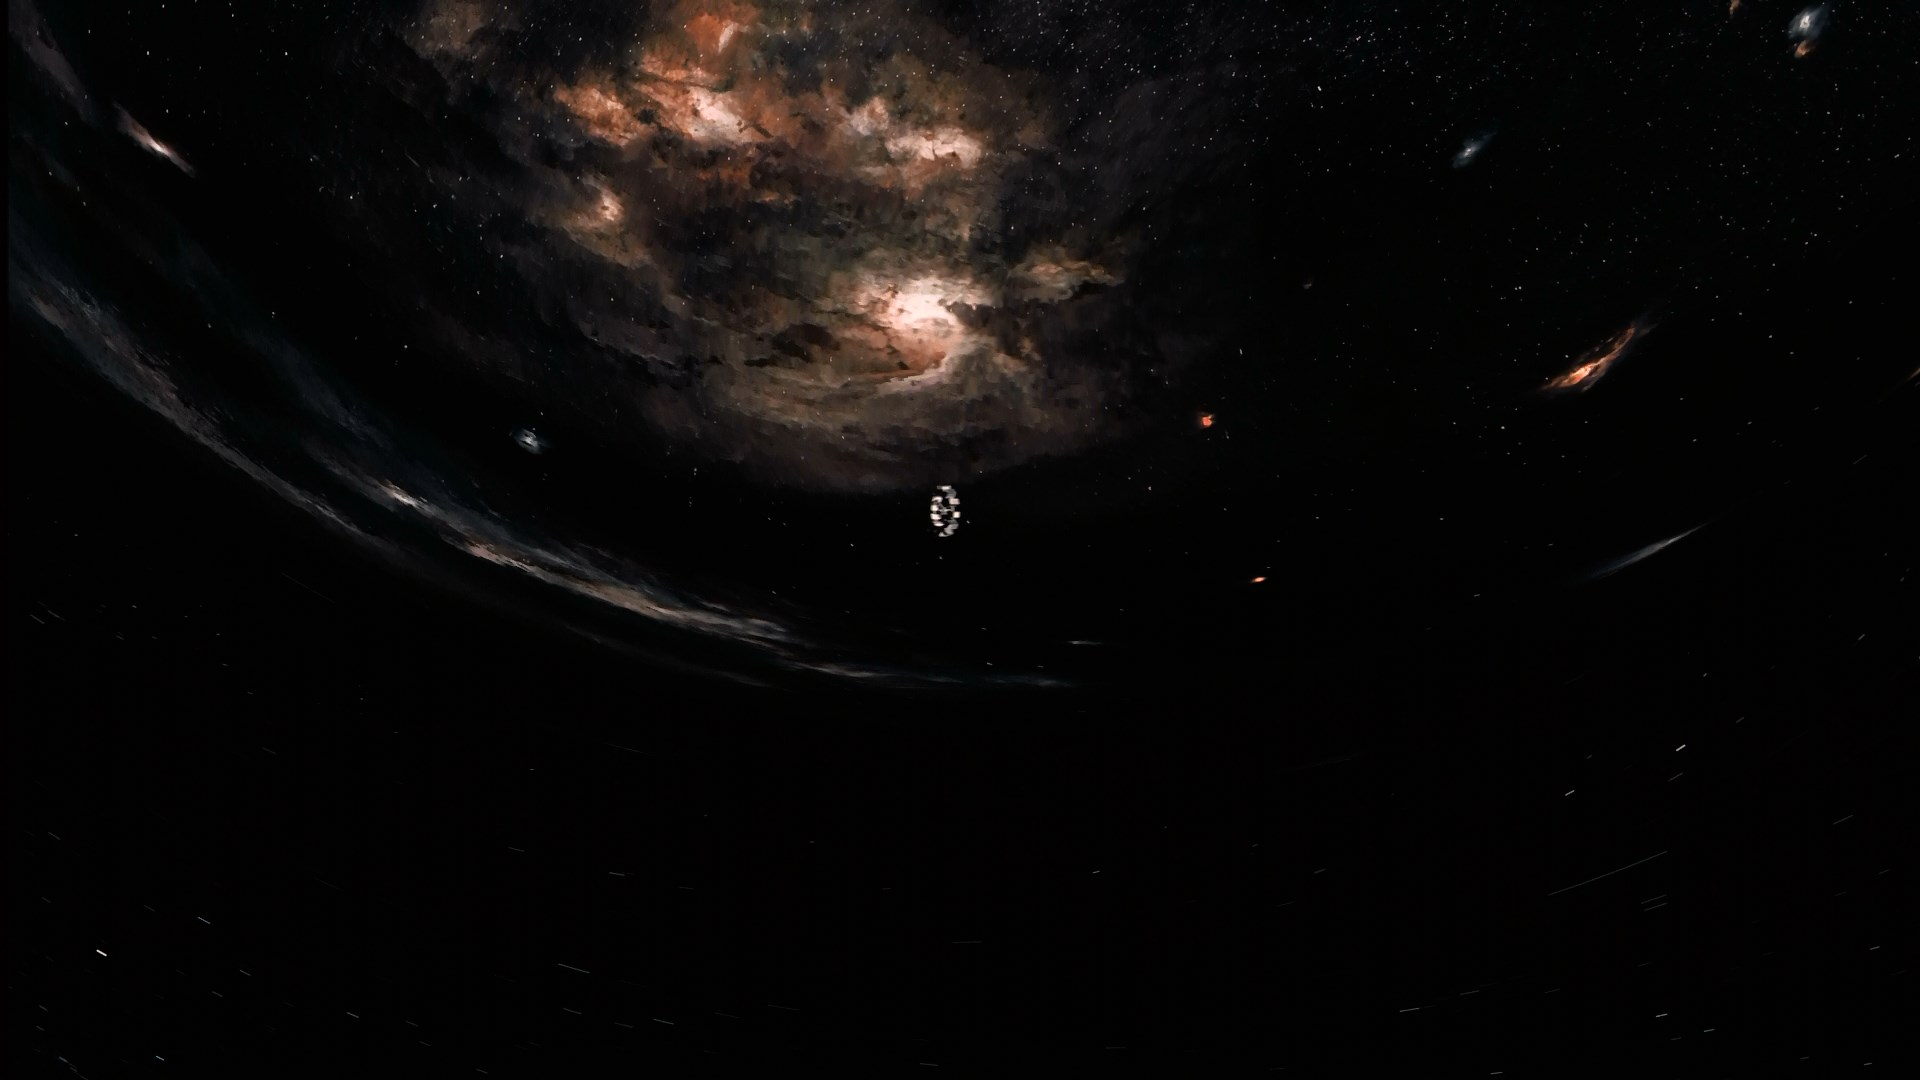 Real Hd Wallpapers 1080p Interstellar Blu Ray Review High Def Digest